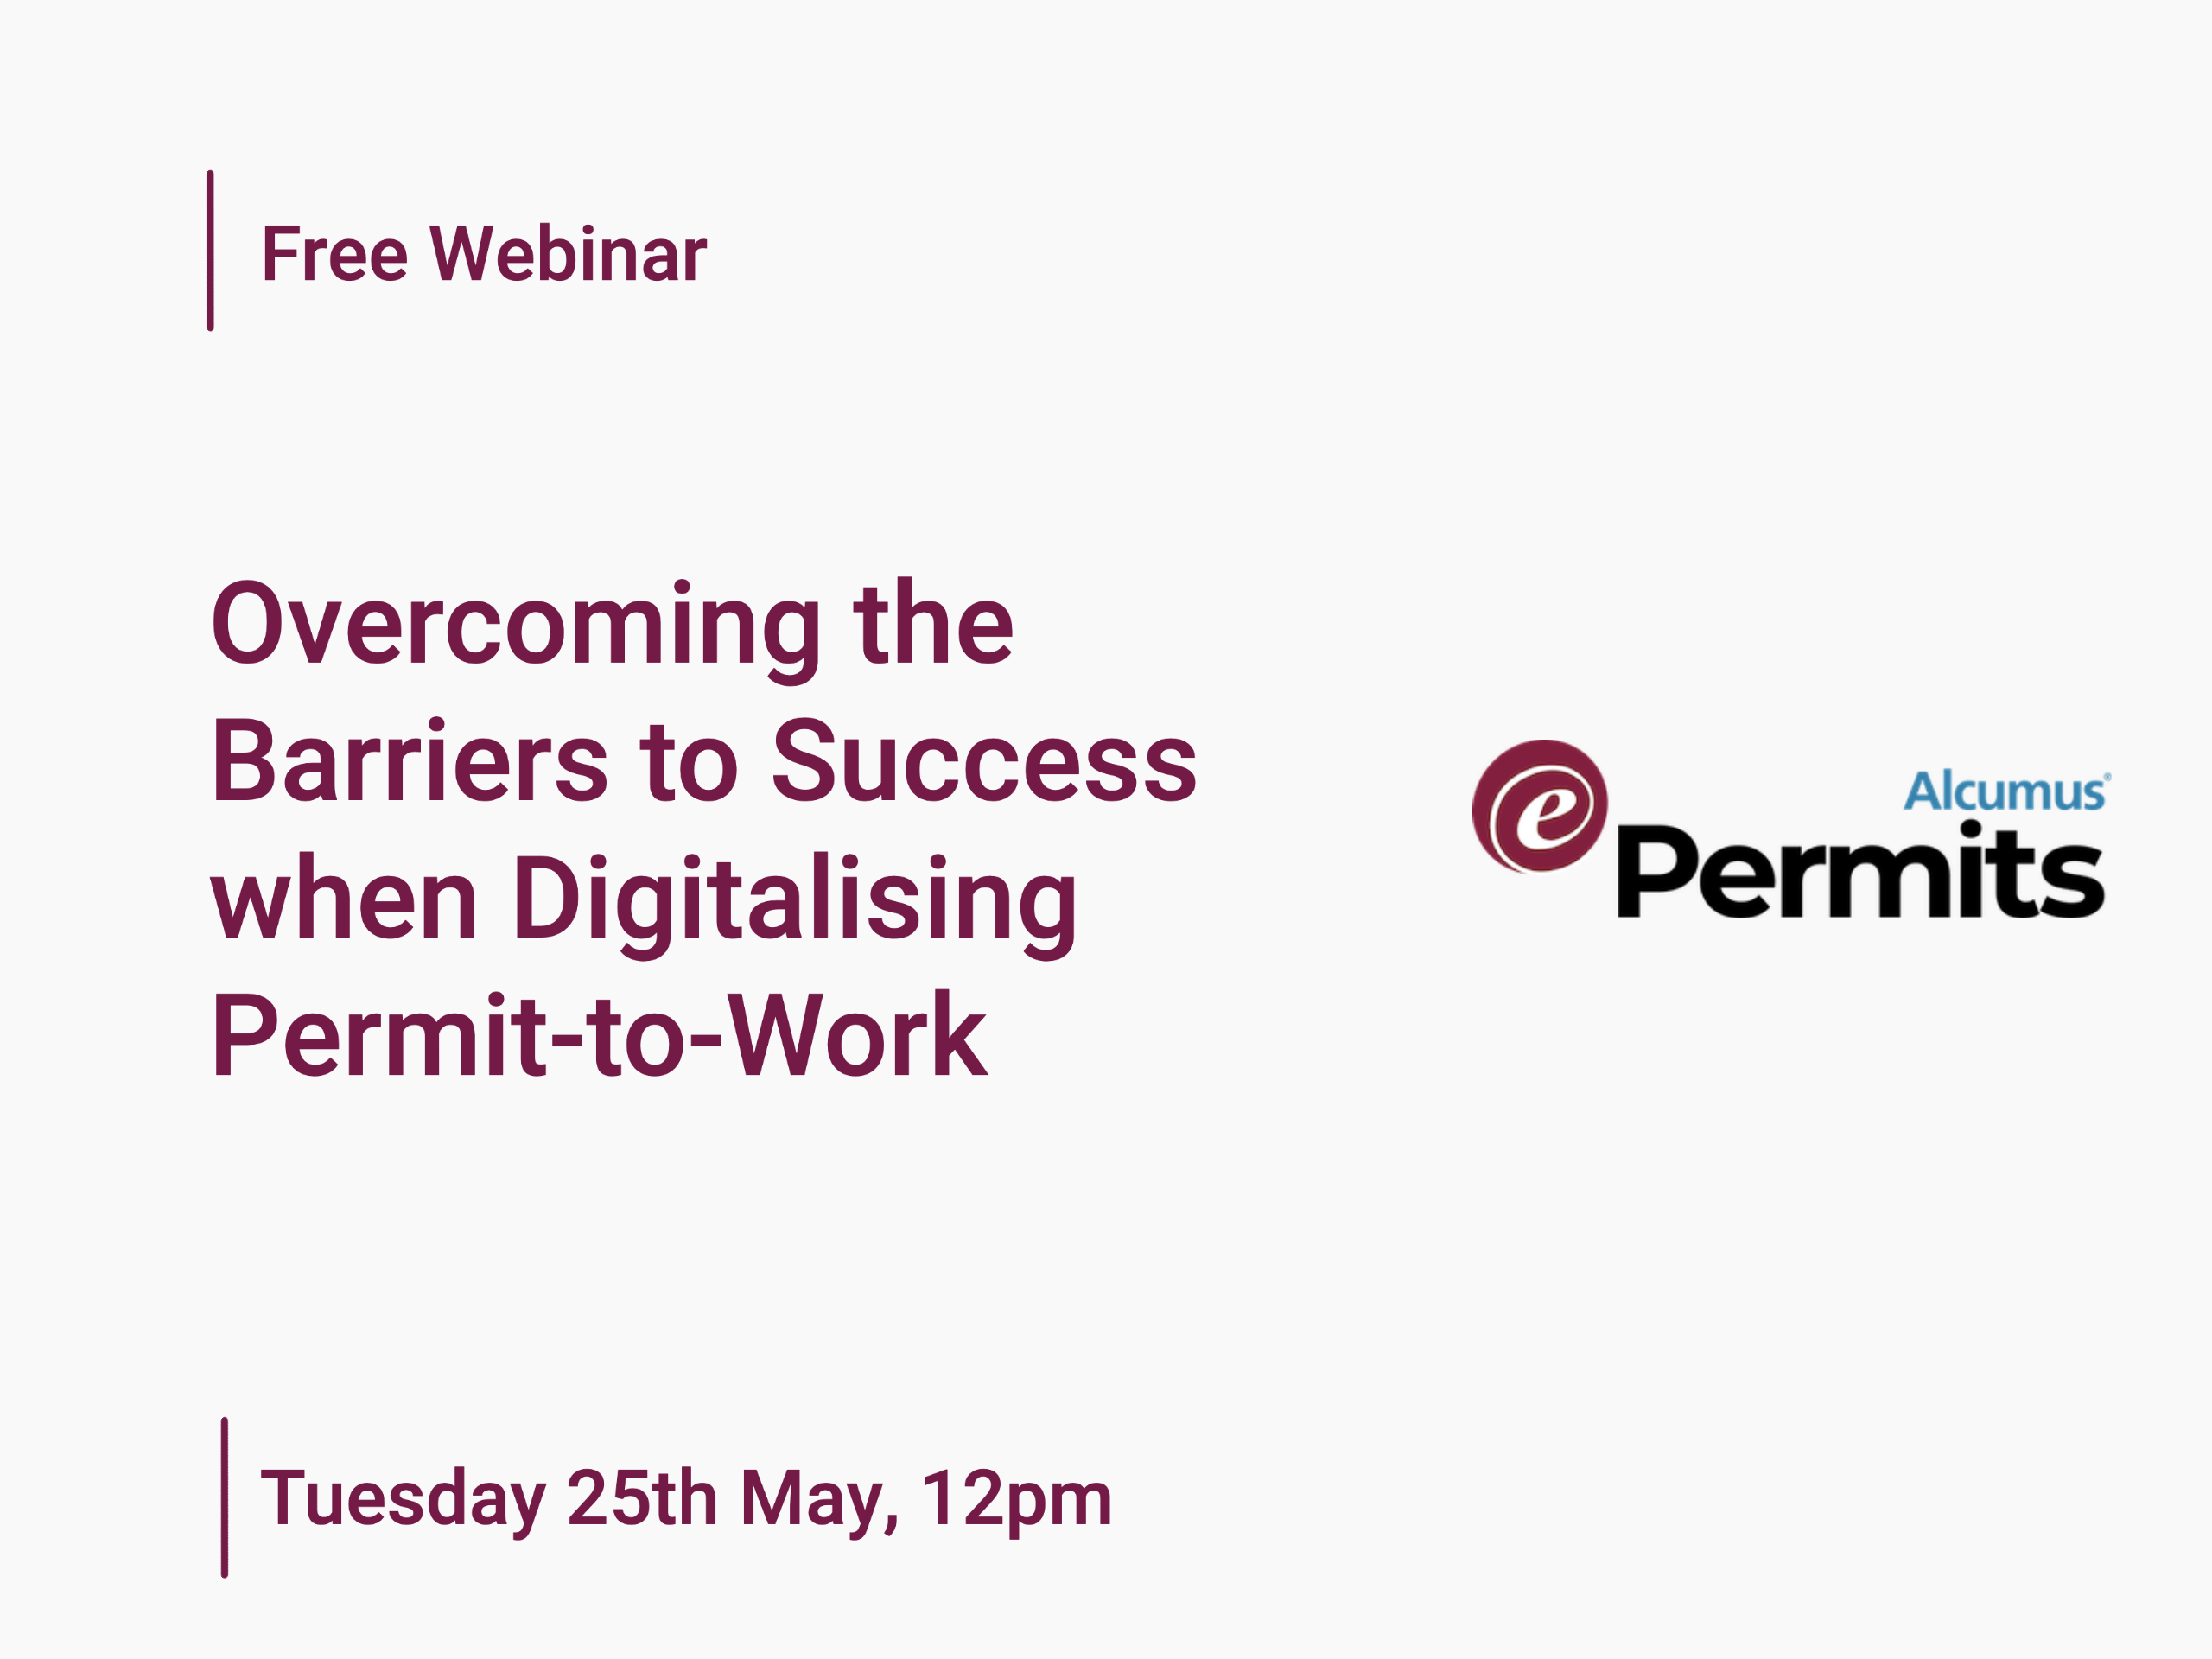 Overcoming the Barriers to Success When Digitalising Permit-to-Work